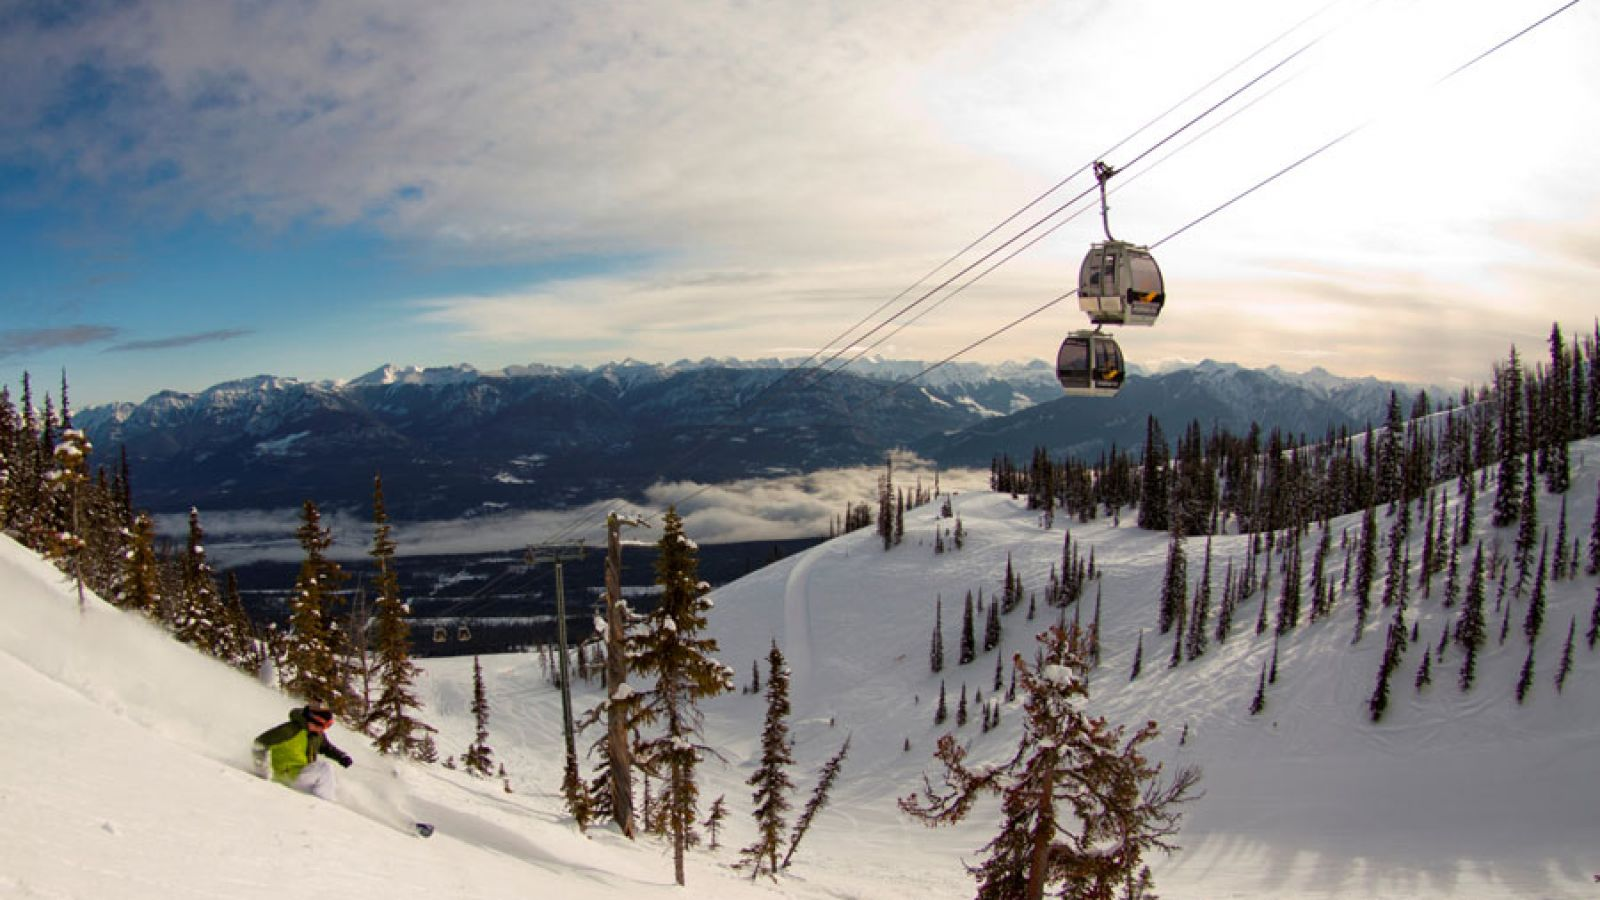 Kicking Horse Mountain Resort in the winter.